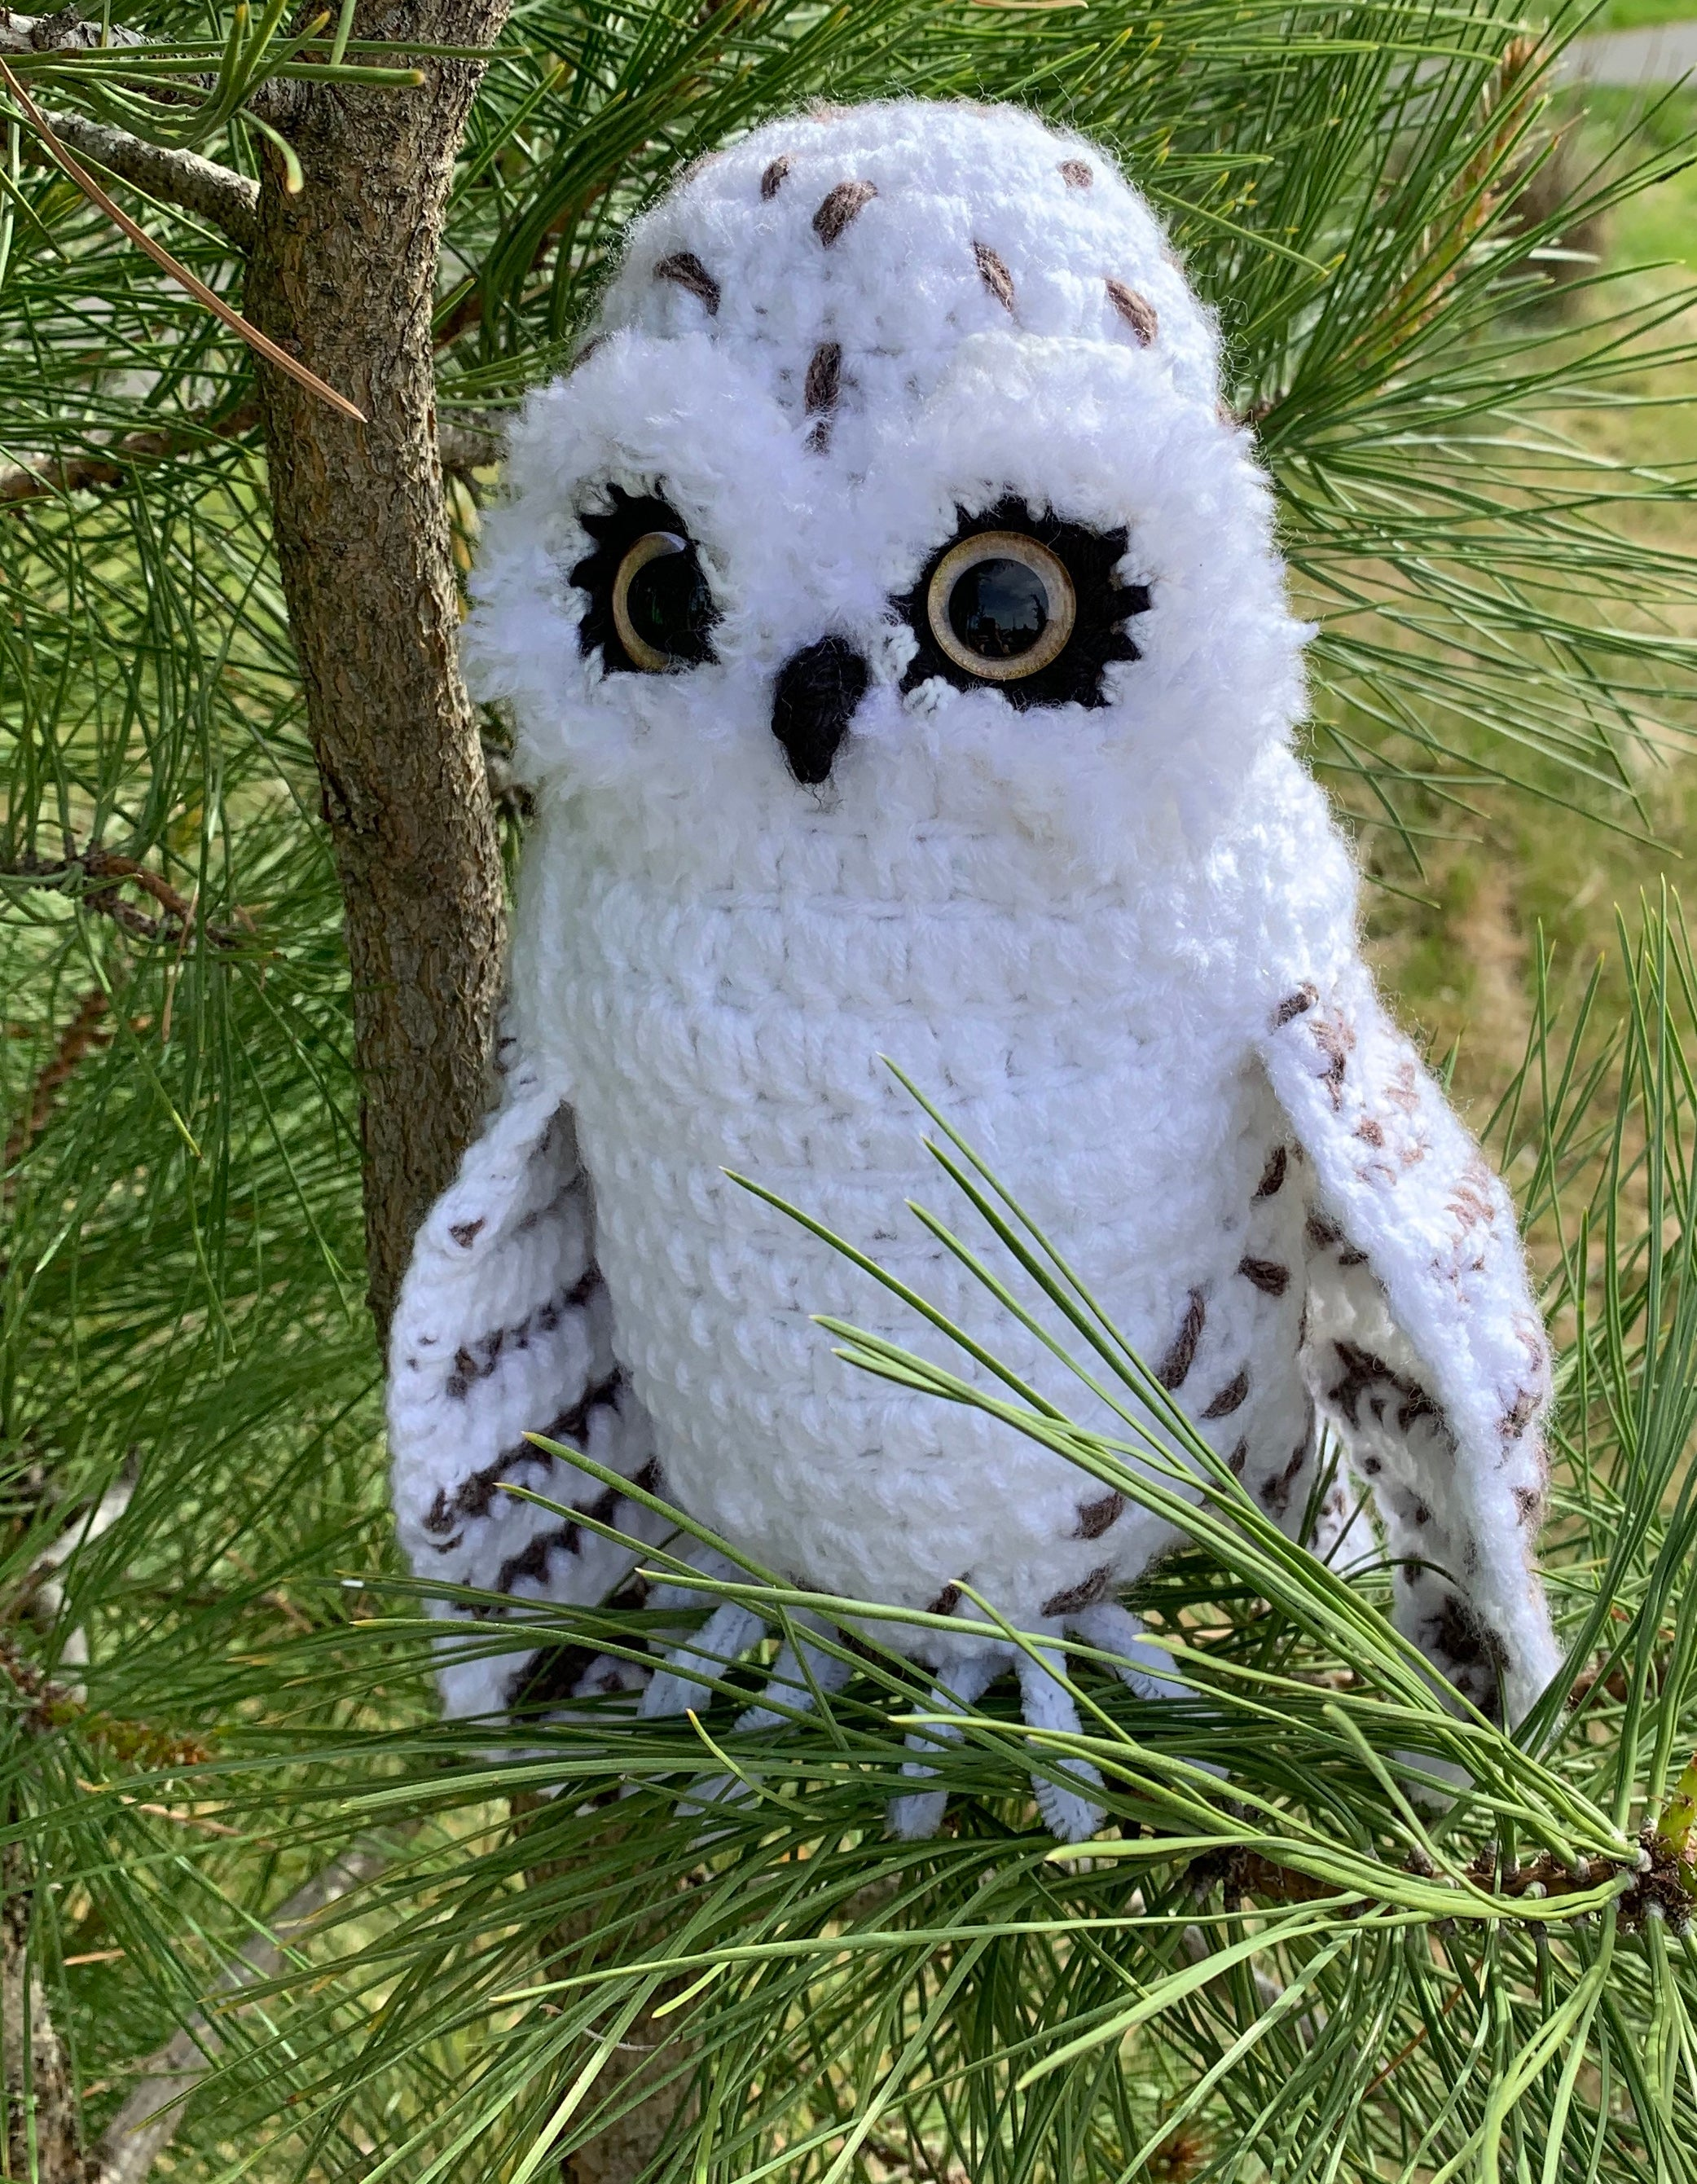 white and speckled handmade owl toy with plastic safety eyes